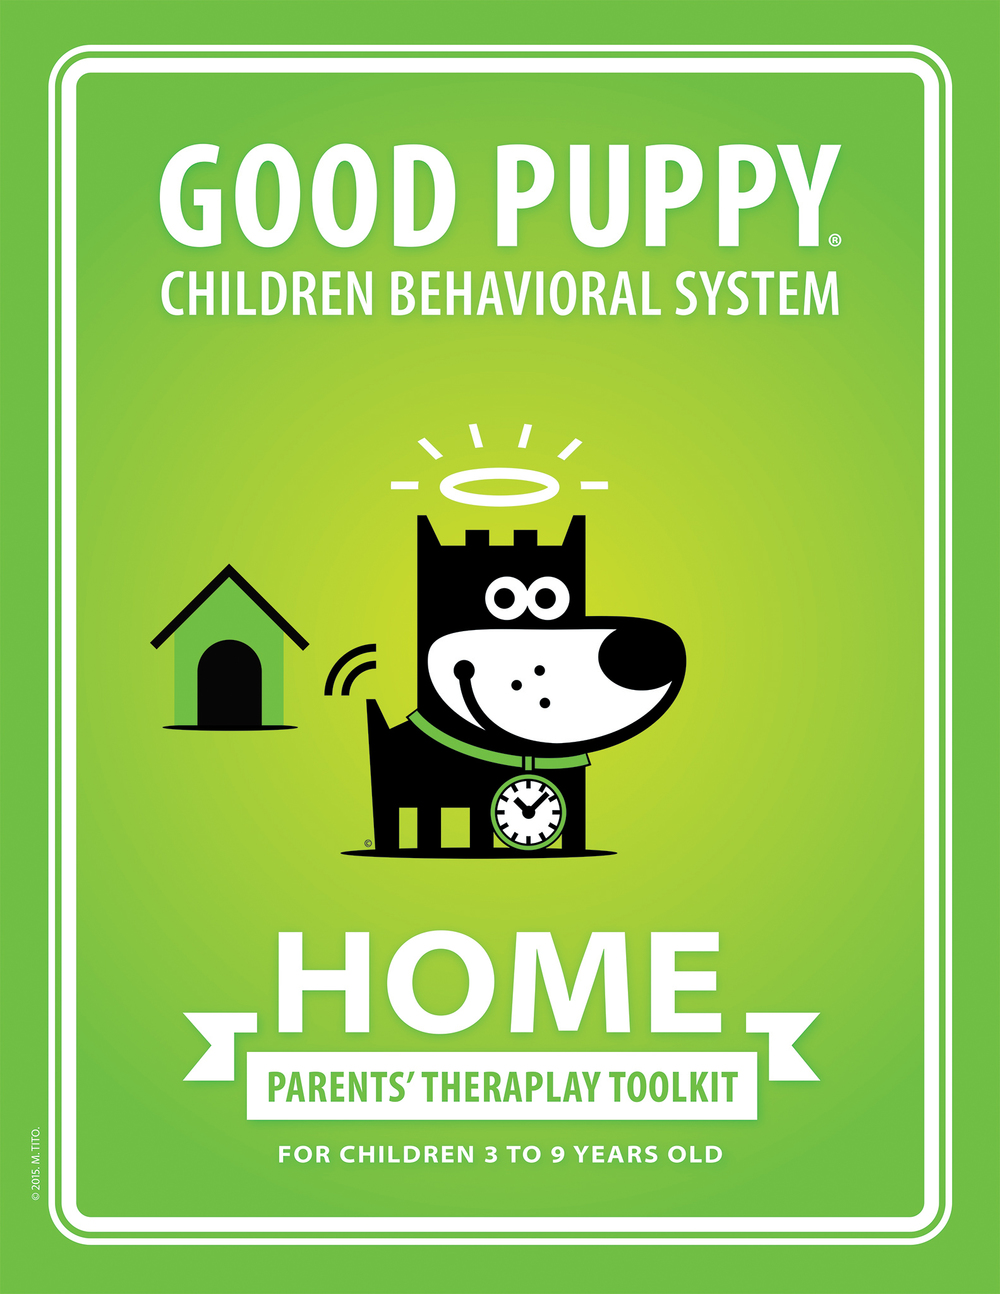 GOOD PUPPY® Children Behavioral System HOME  Press Kit